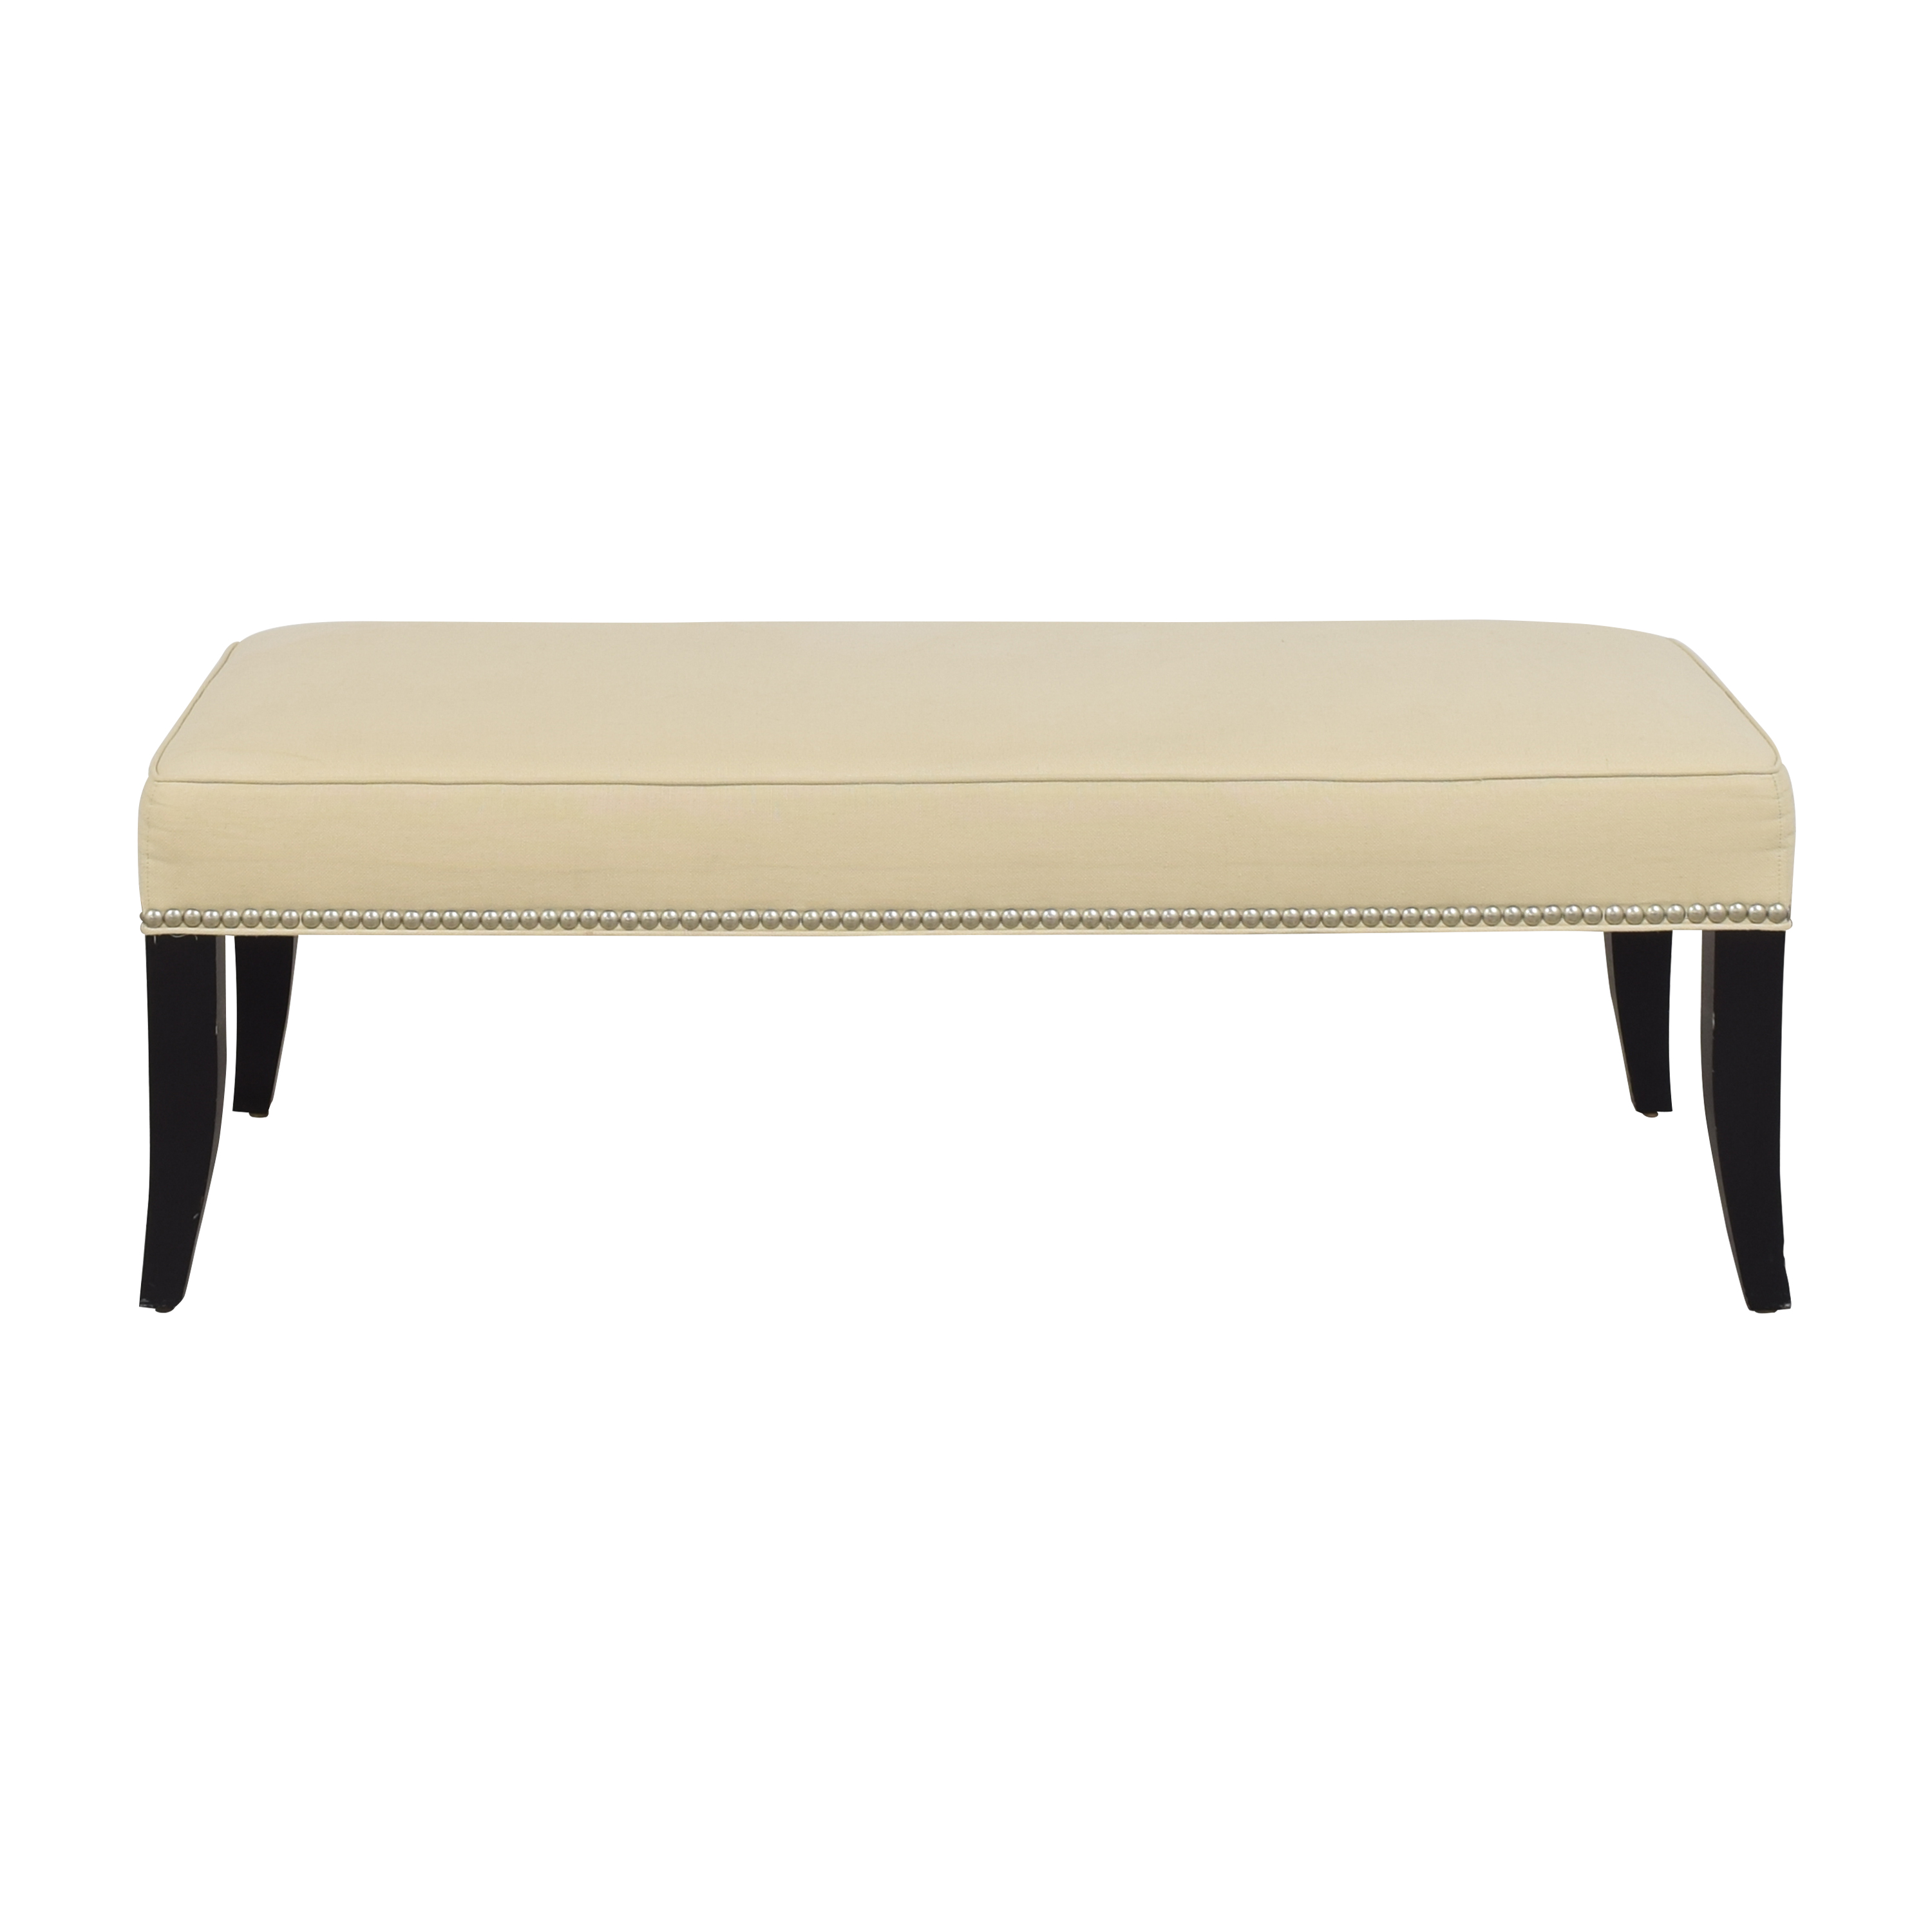 Crate & Barrel Crate & Barrel Upholstered Bench used